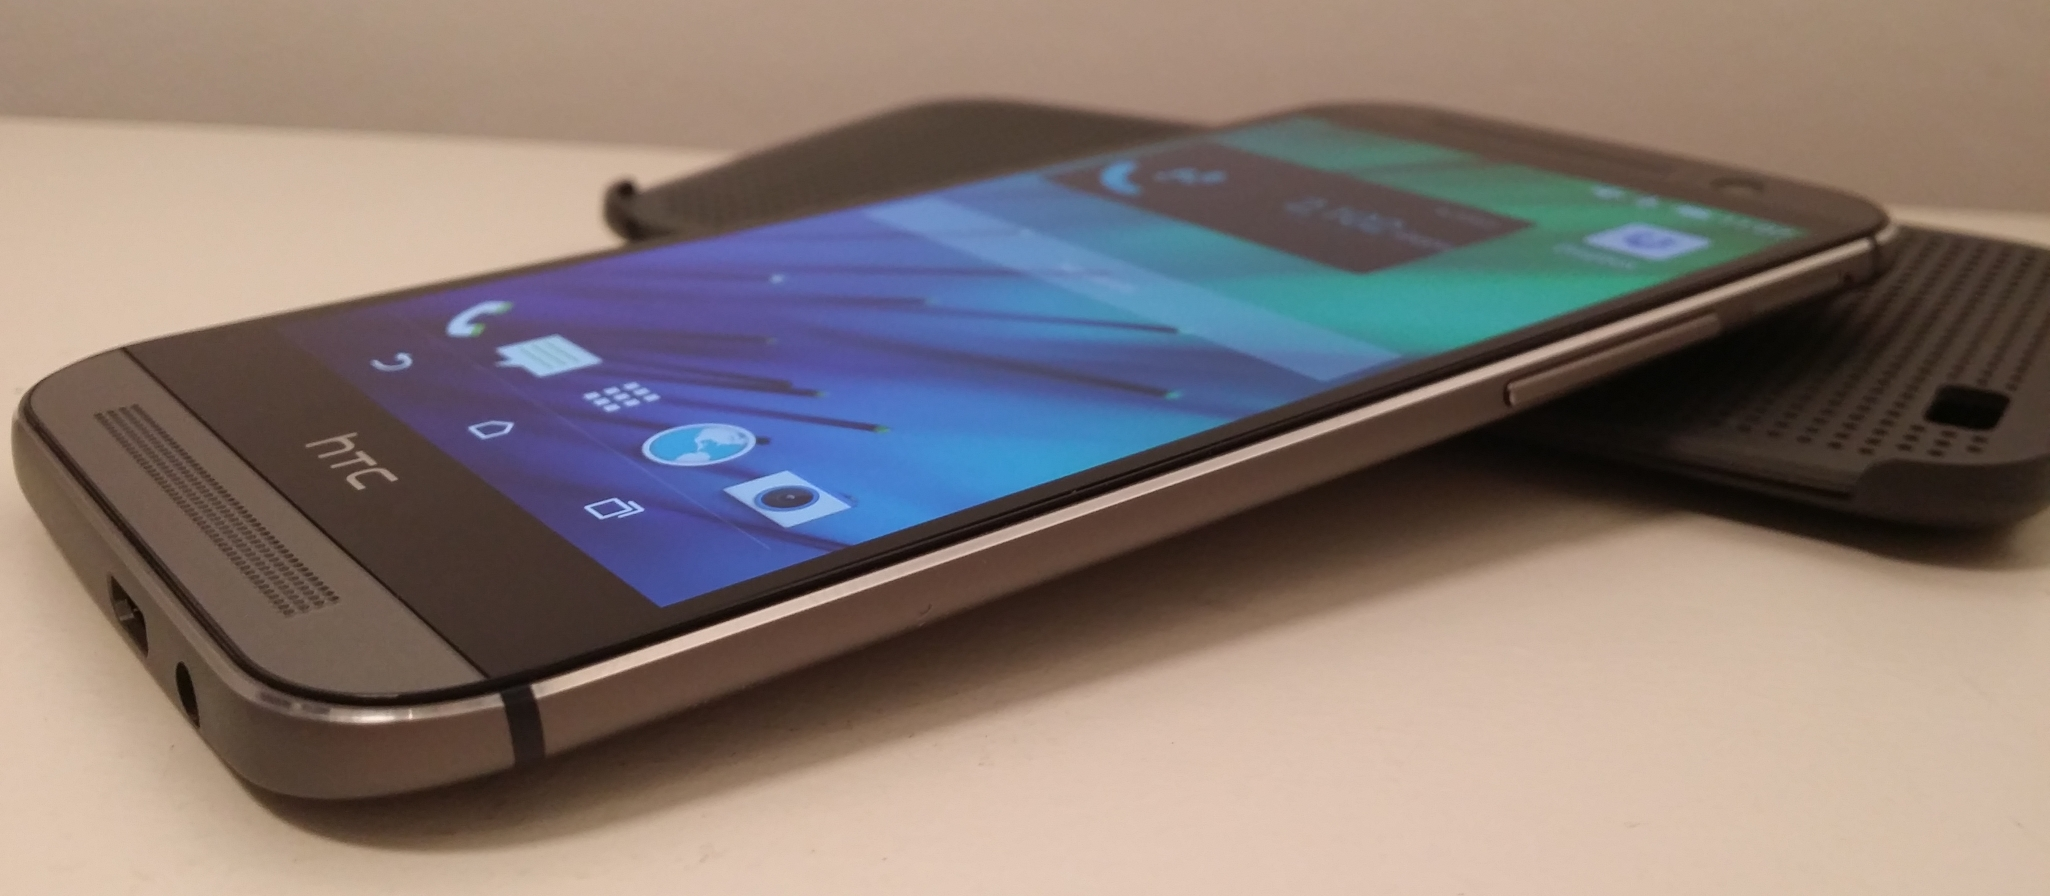 HTC One (M8) Launch Fails to Avoid 27% YoY Revenue Drop in May